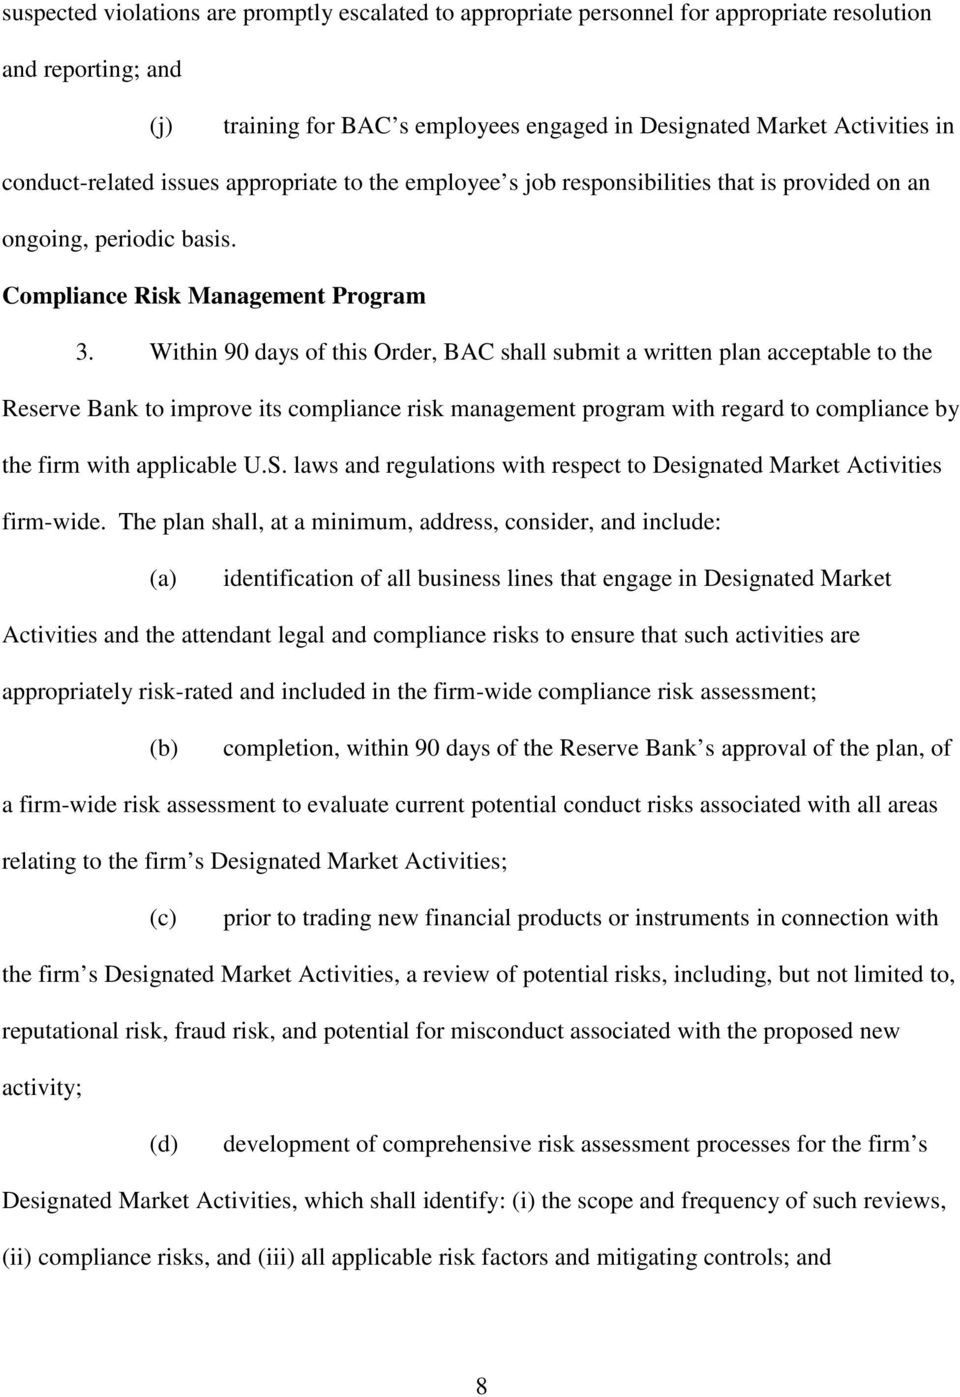 Within 90 days of this Order, BAC shall submit a written plan acceptable to the Reserve Bank to improve its compliance risk management program with regard to compliance by the firm with applicable U.